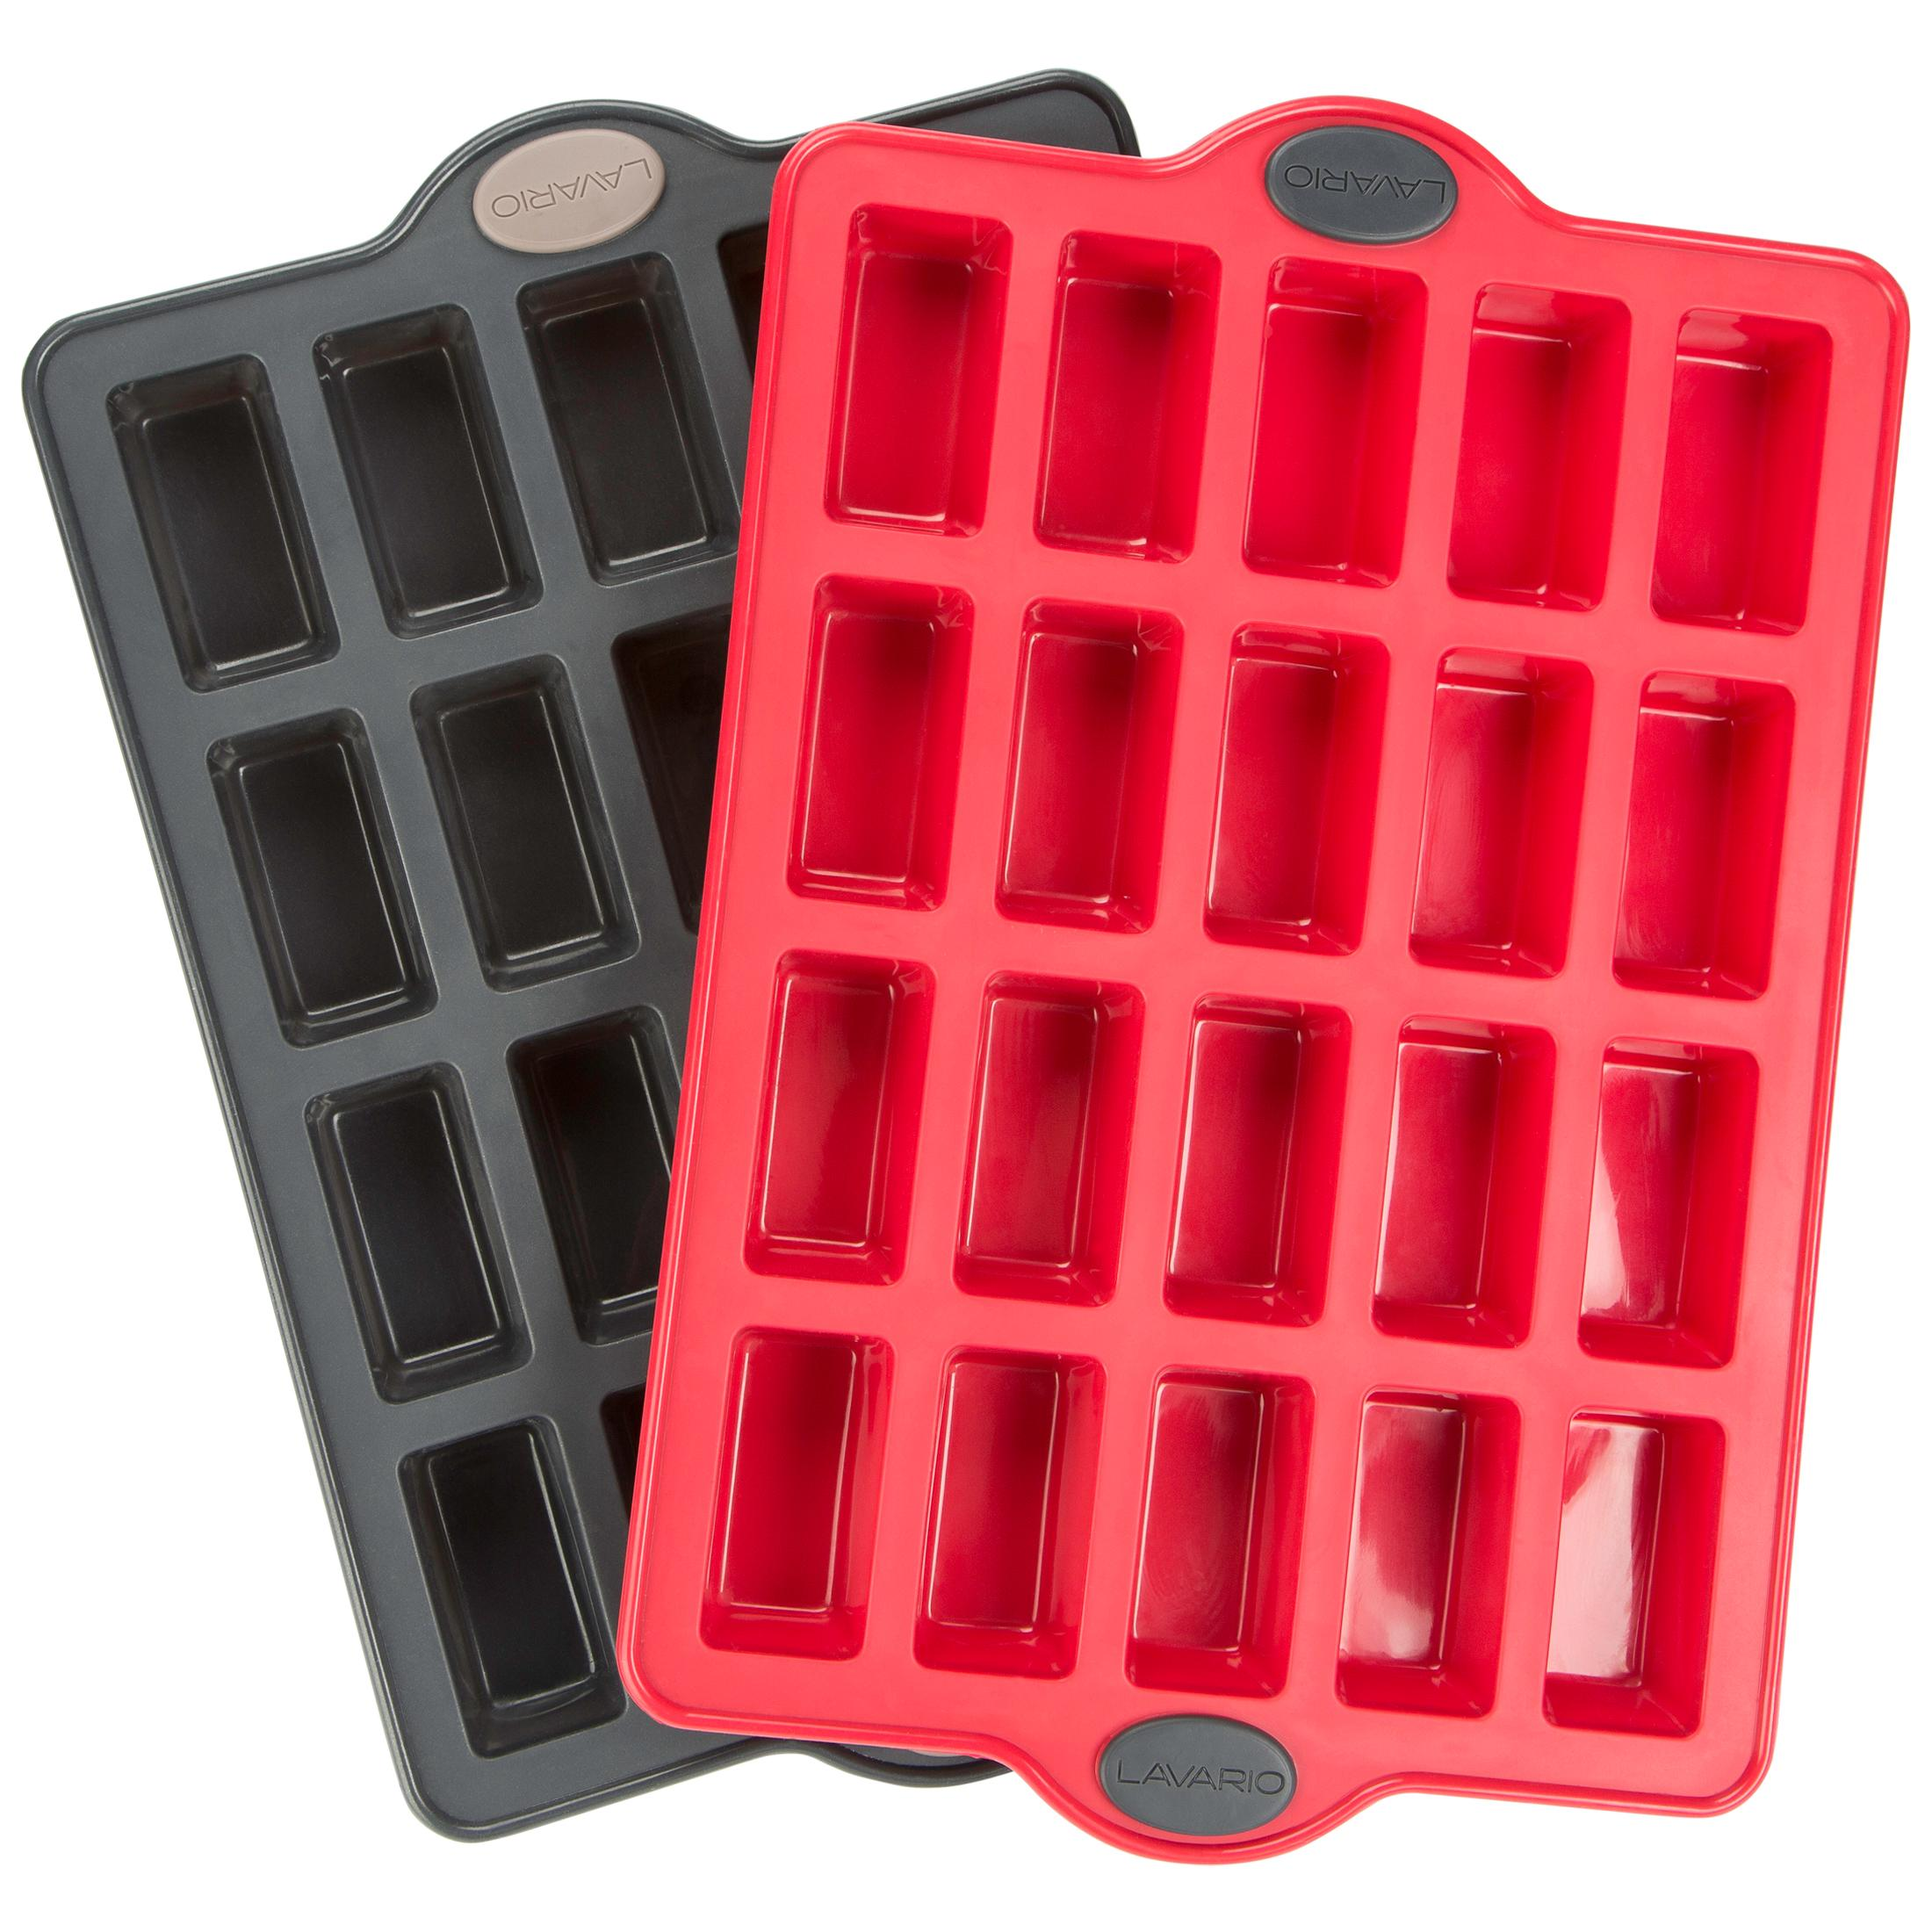 Levivo Silicone 20 Brownie Form Baking Sheet For